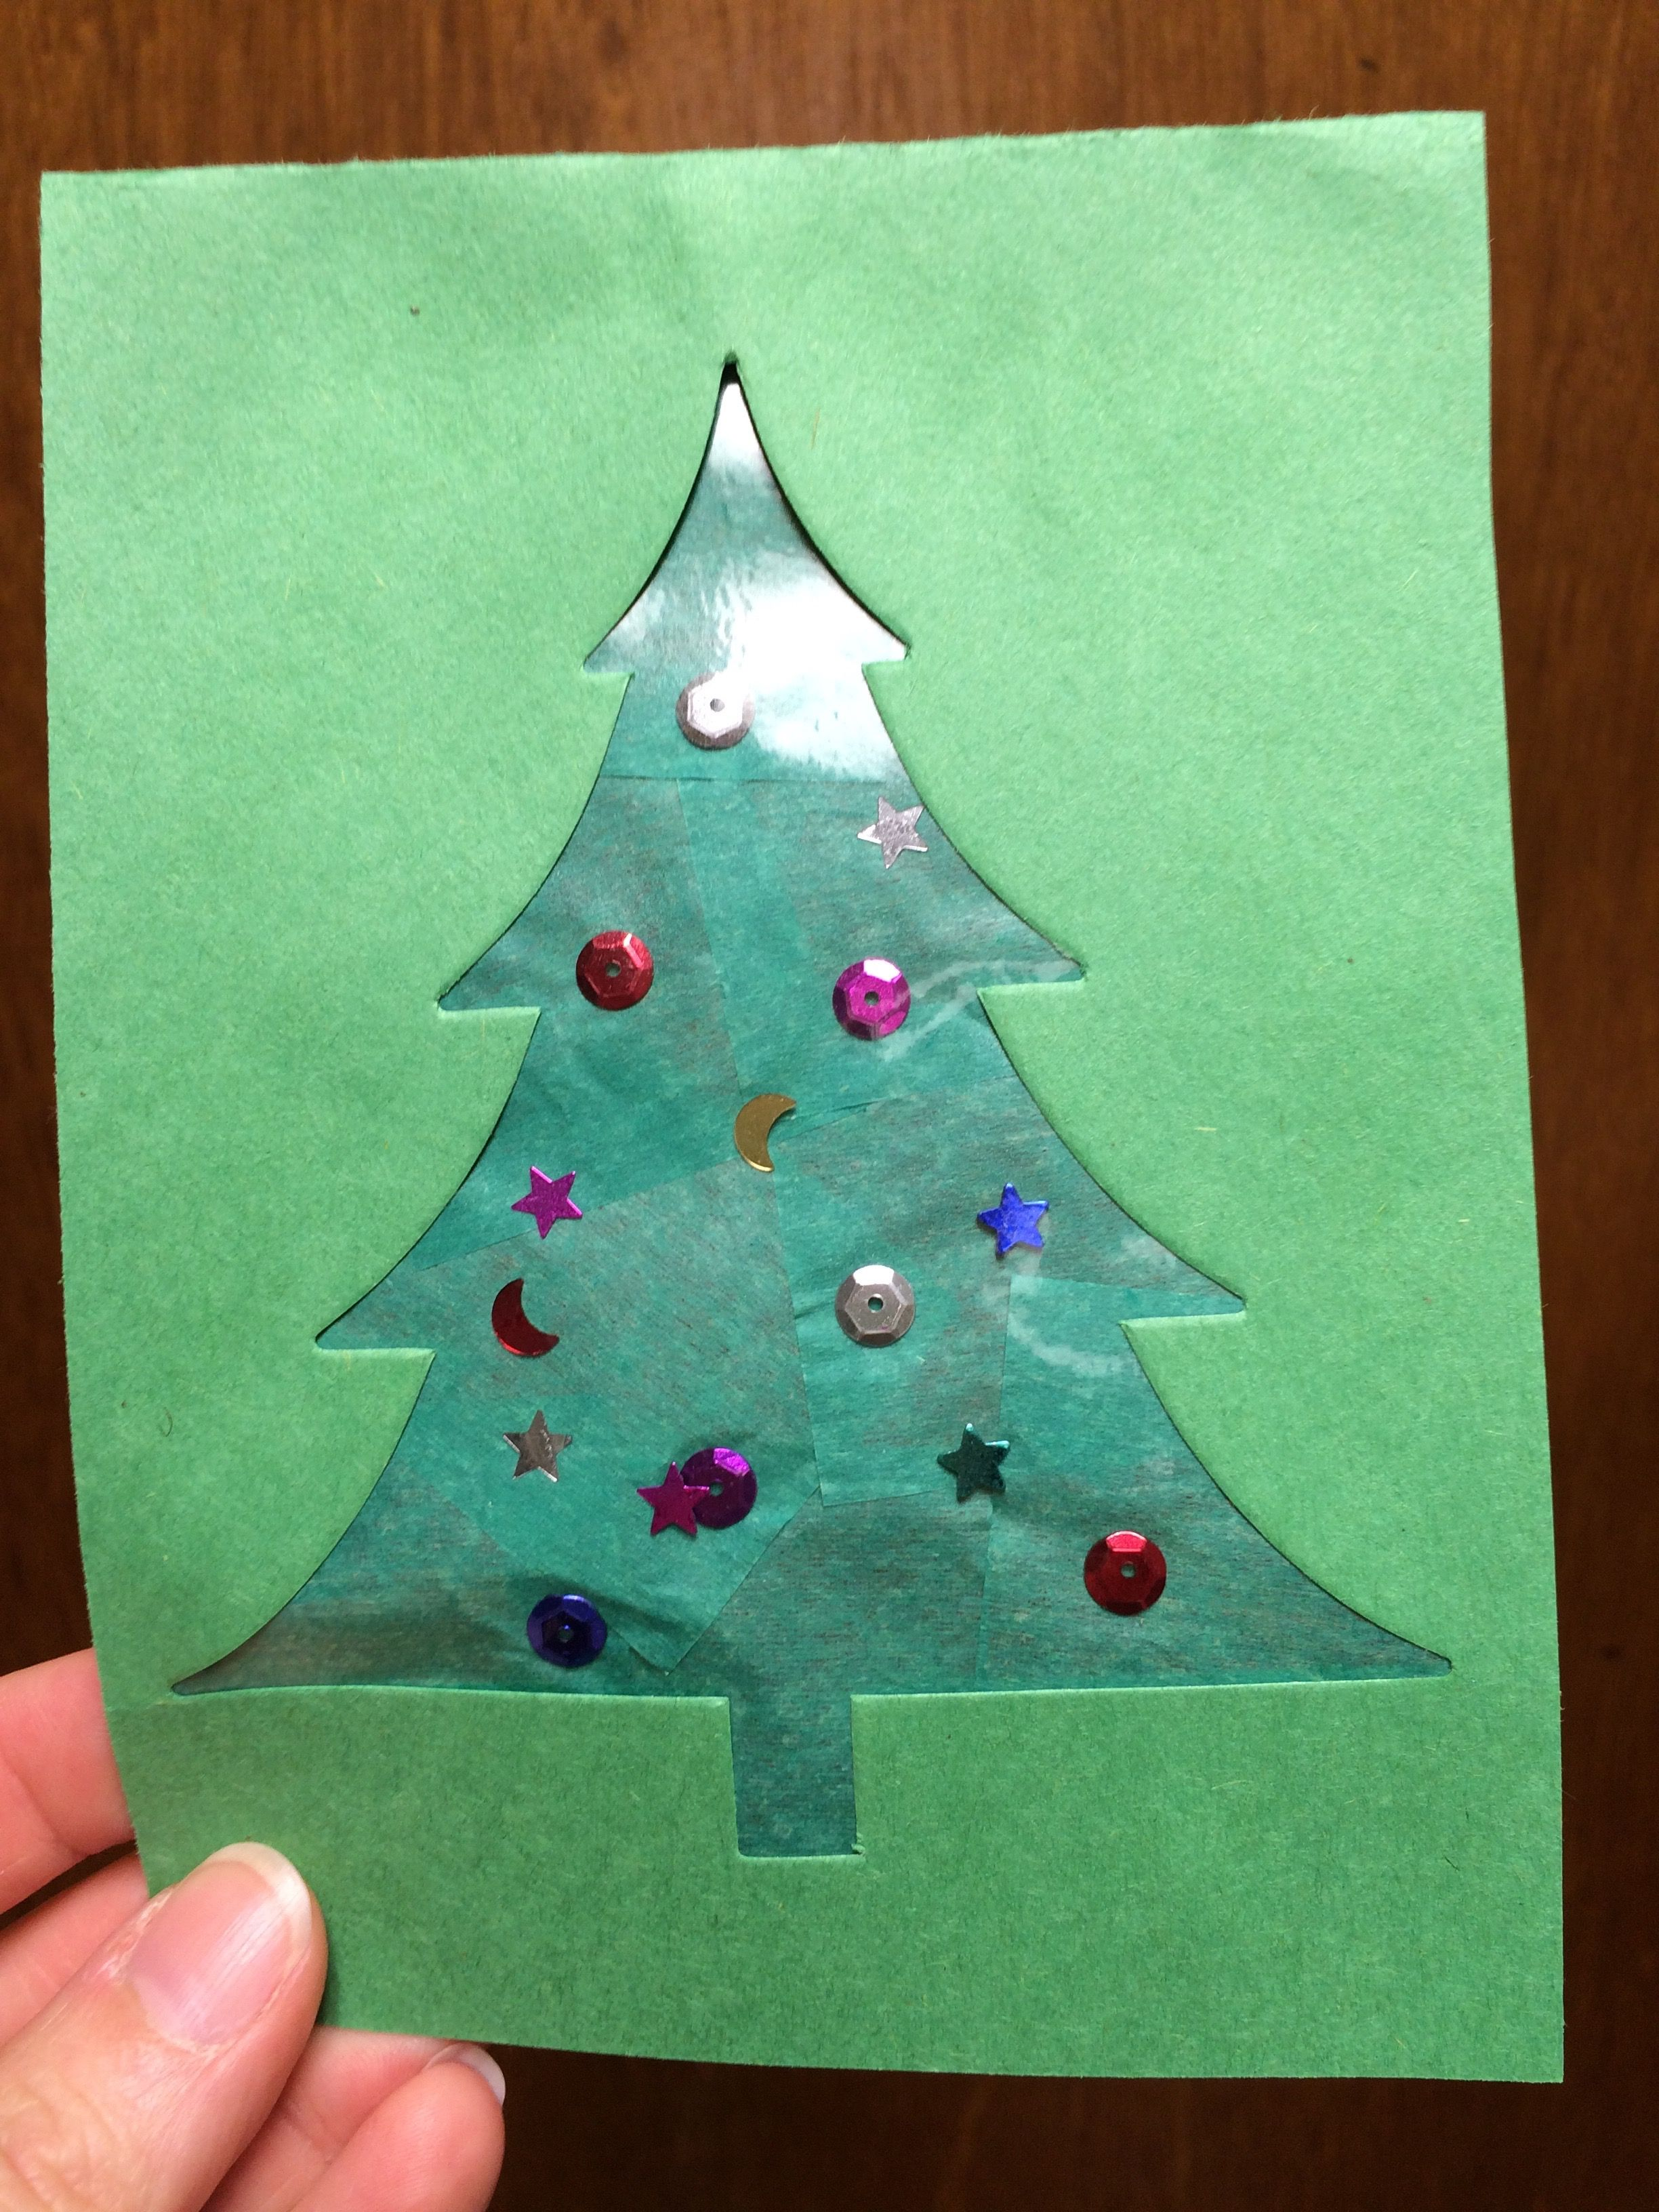 Stain Glass Christmas: Cut a Tree out of the middle of green ...